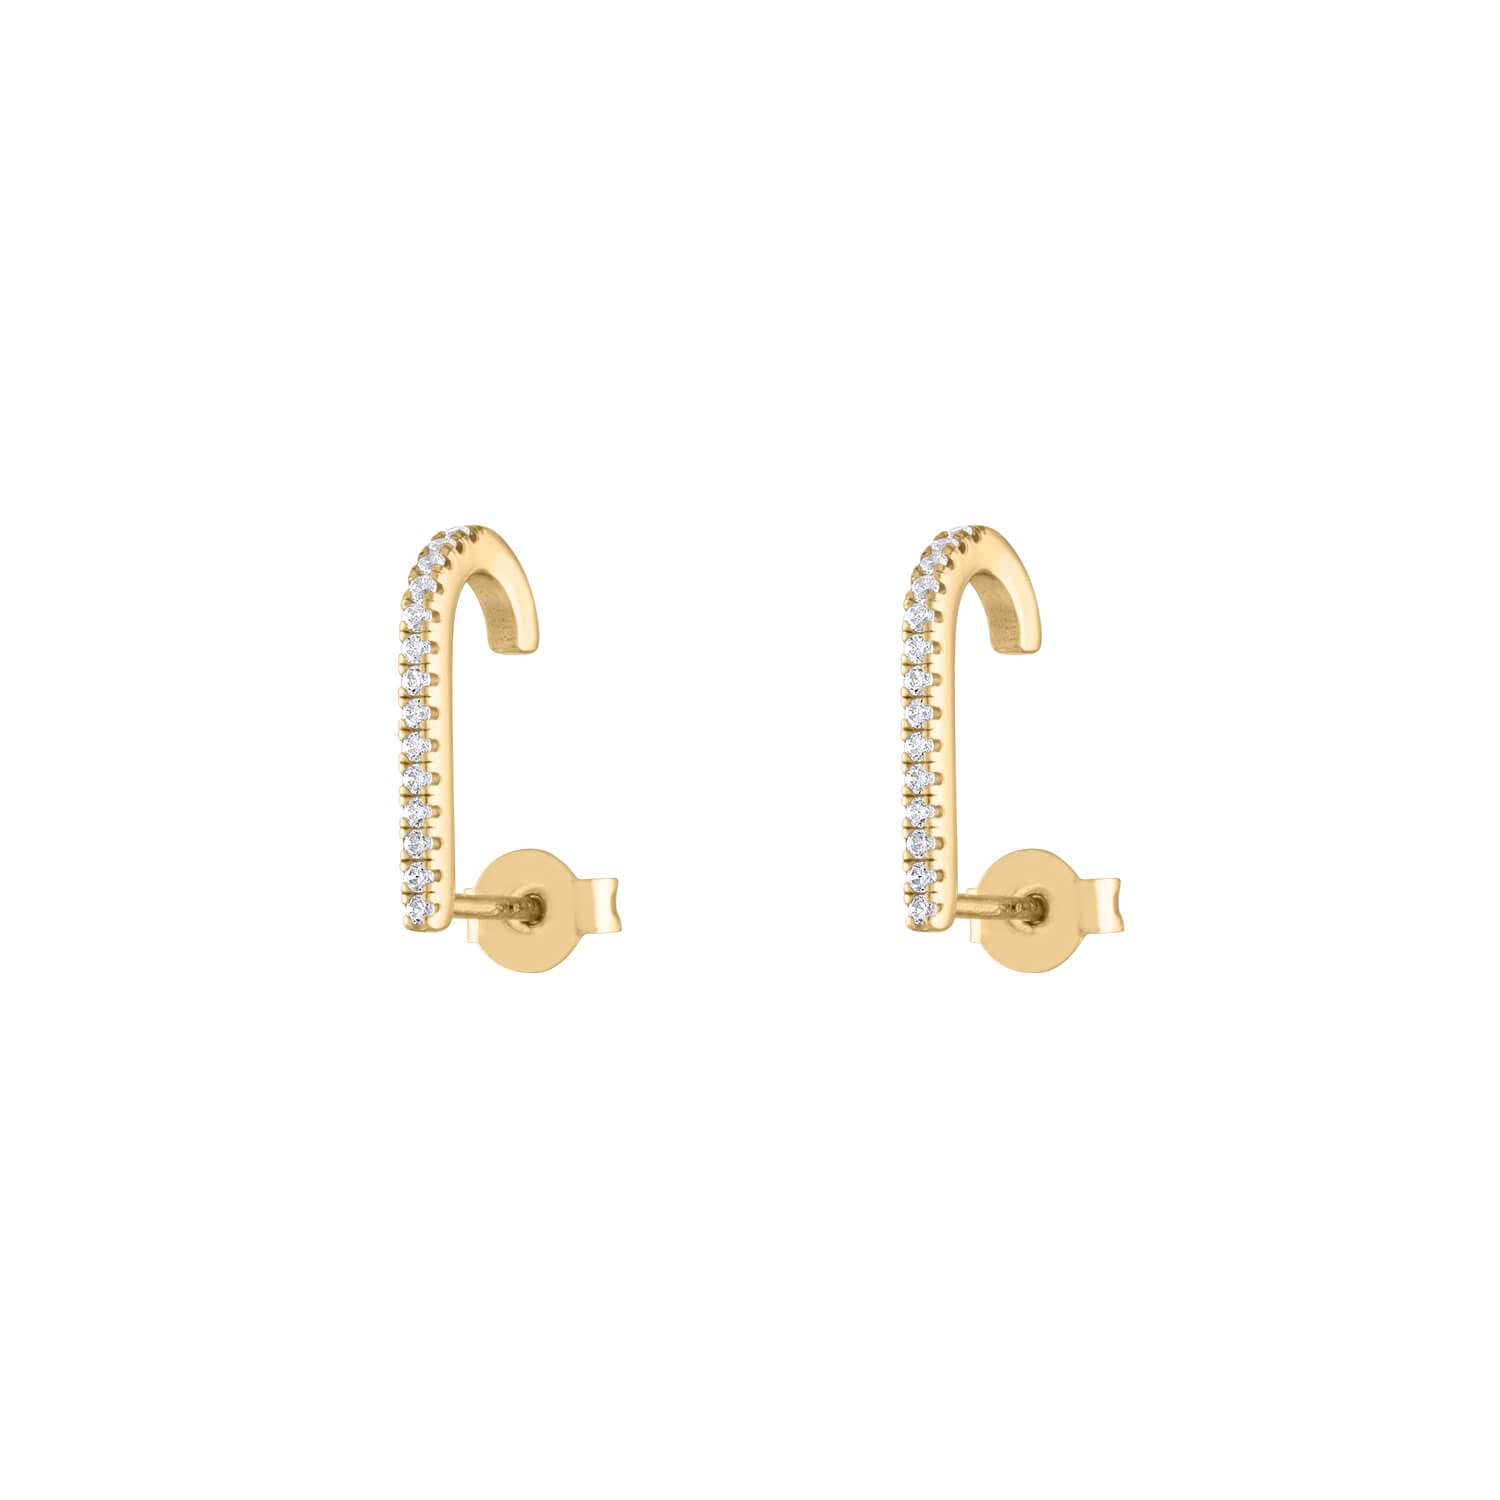 Celestial Hook Earrings in Gold Vermeil